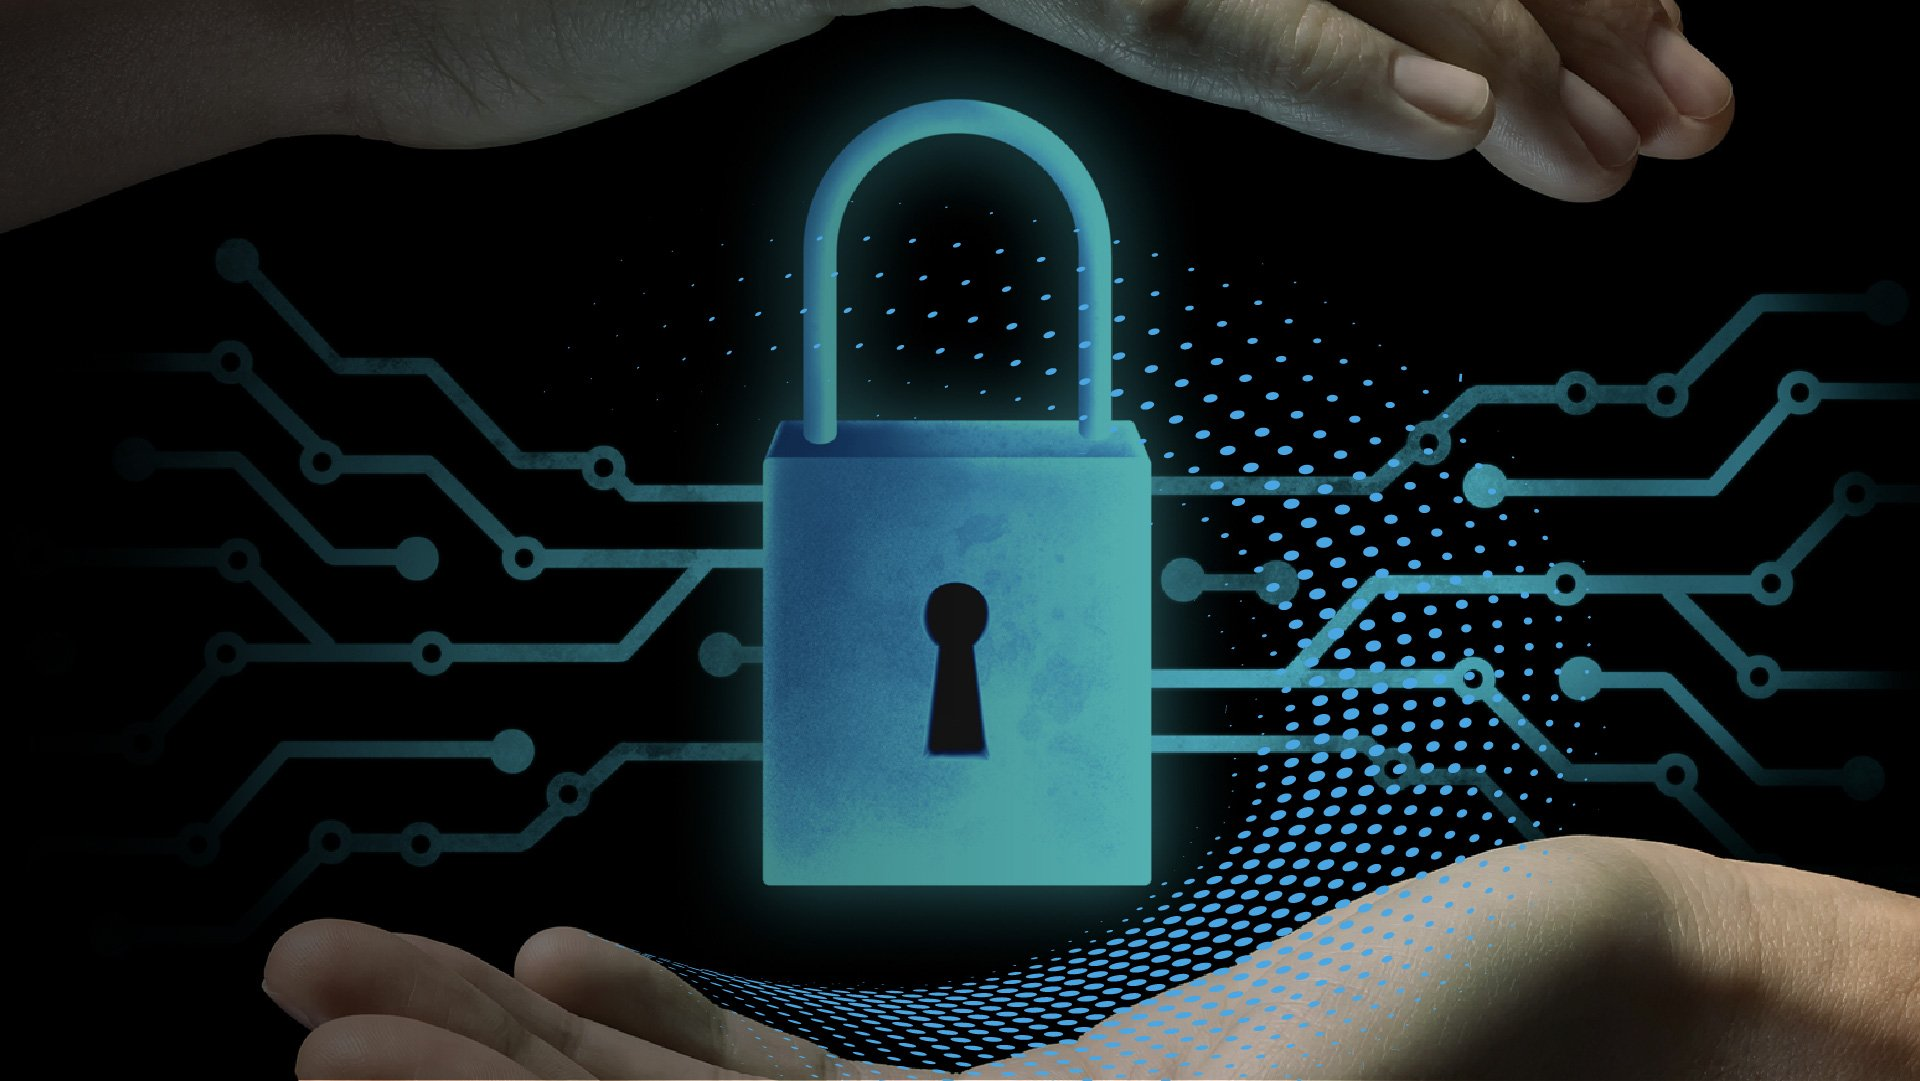 Cybersecurity webinar playlist featuring the top cybersecurity sessions from Automation Fair® At Home